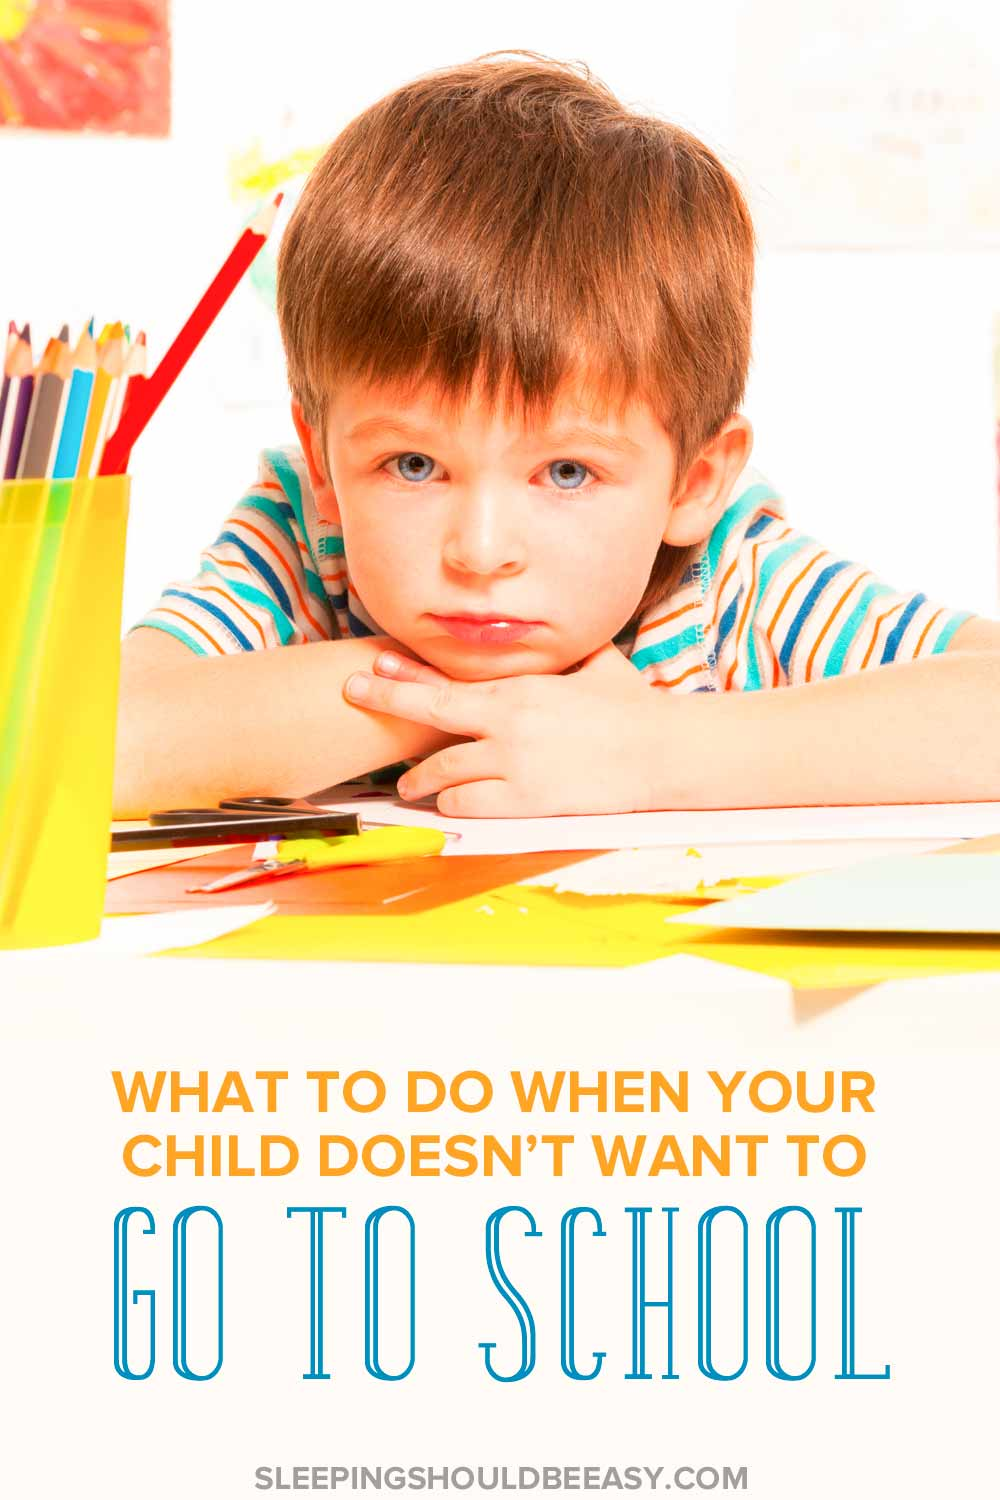 How to Respond when Your Child Doesn't Want to Go to School